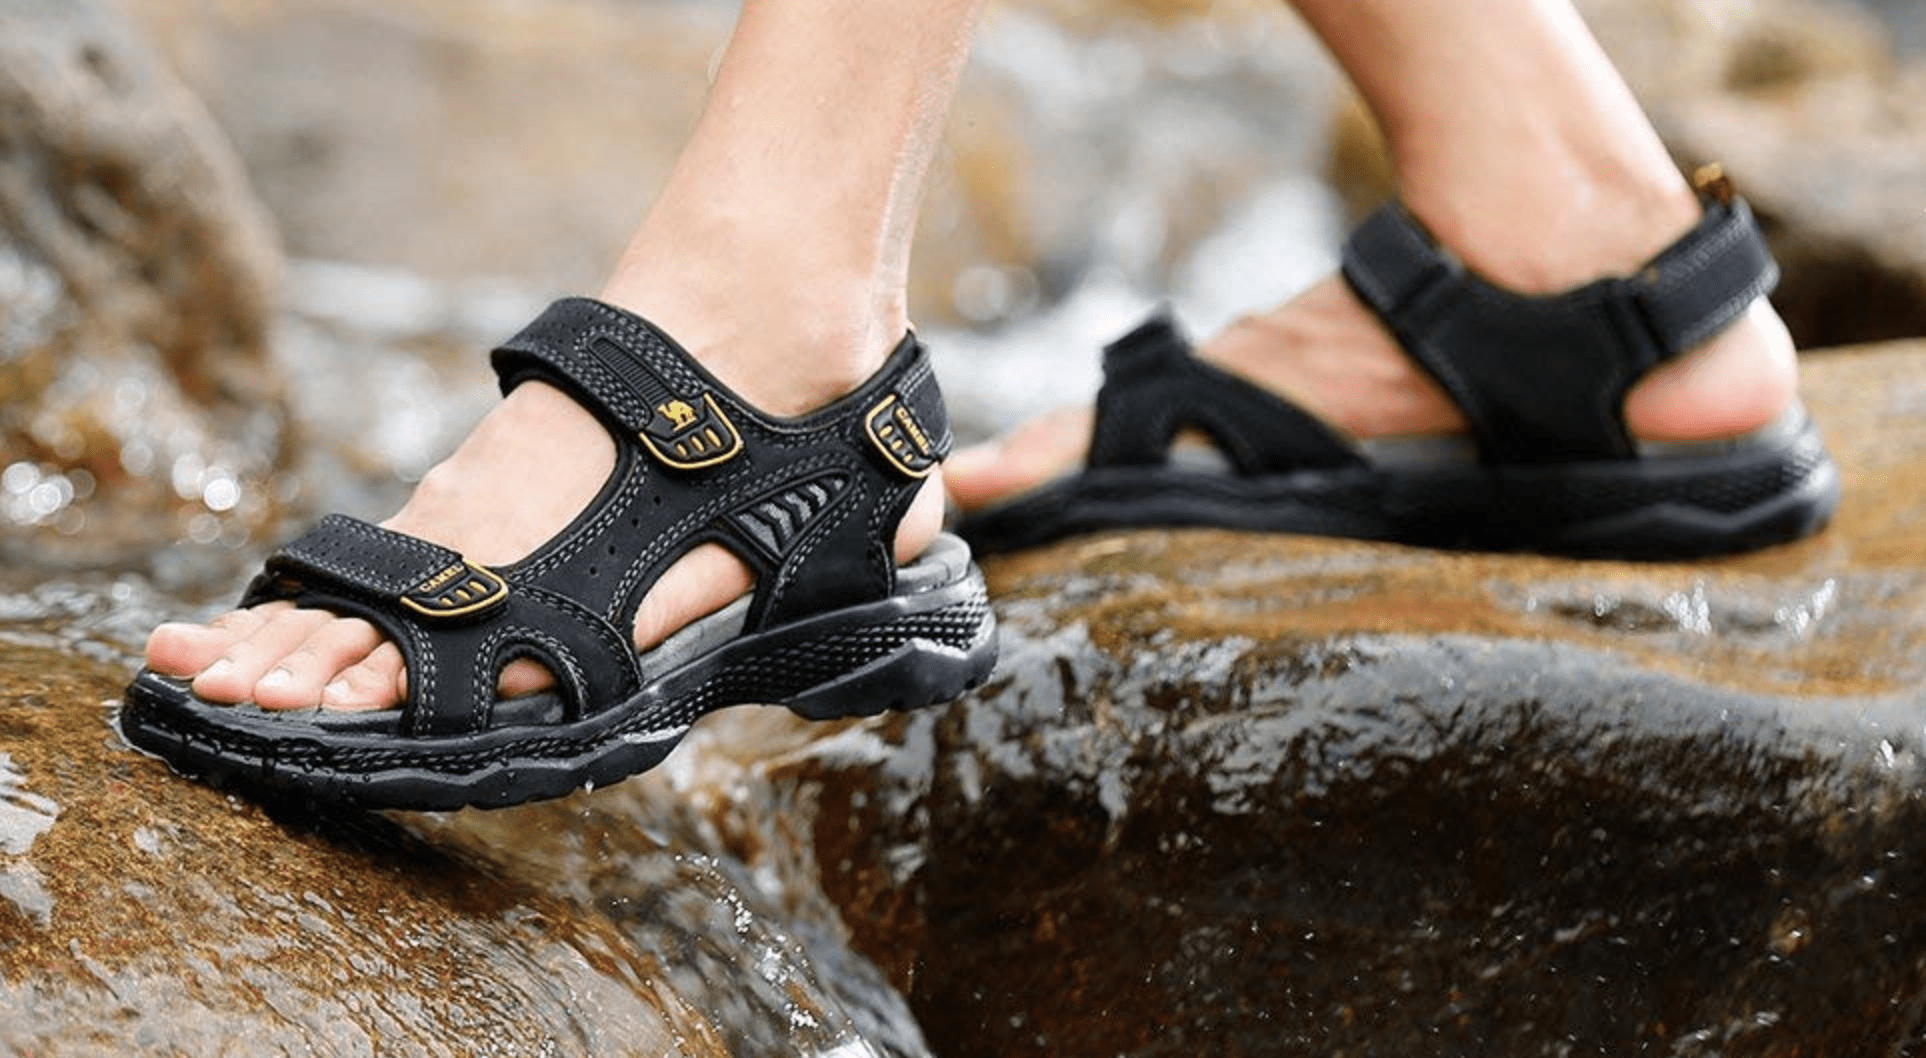 3b502d91e7e The 10 Best Hiking Sandals for Men in 2019 - Trendy Reviewed